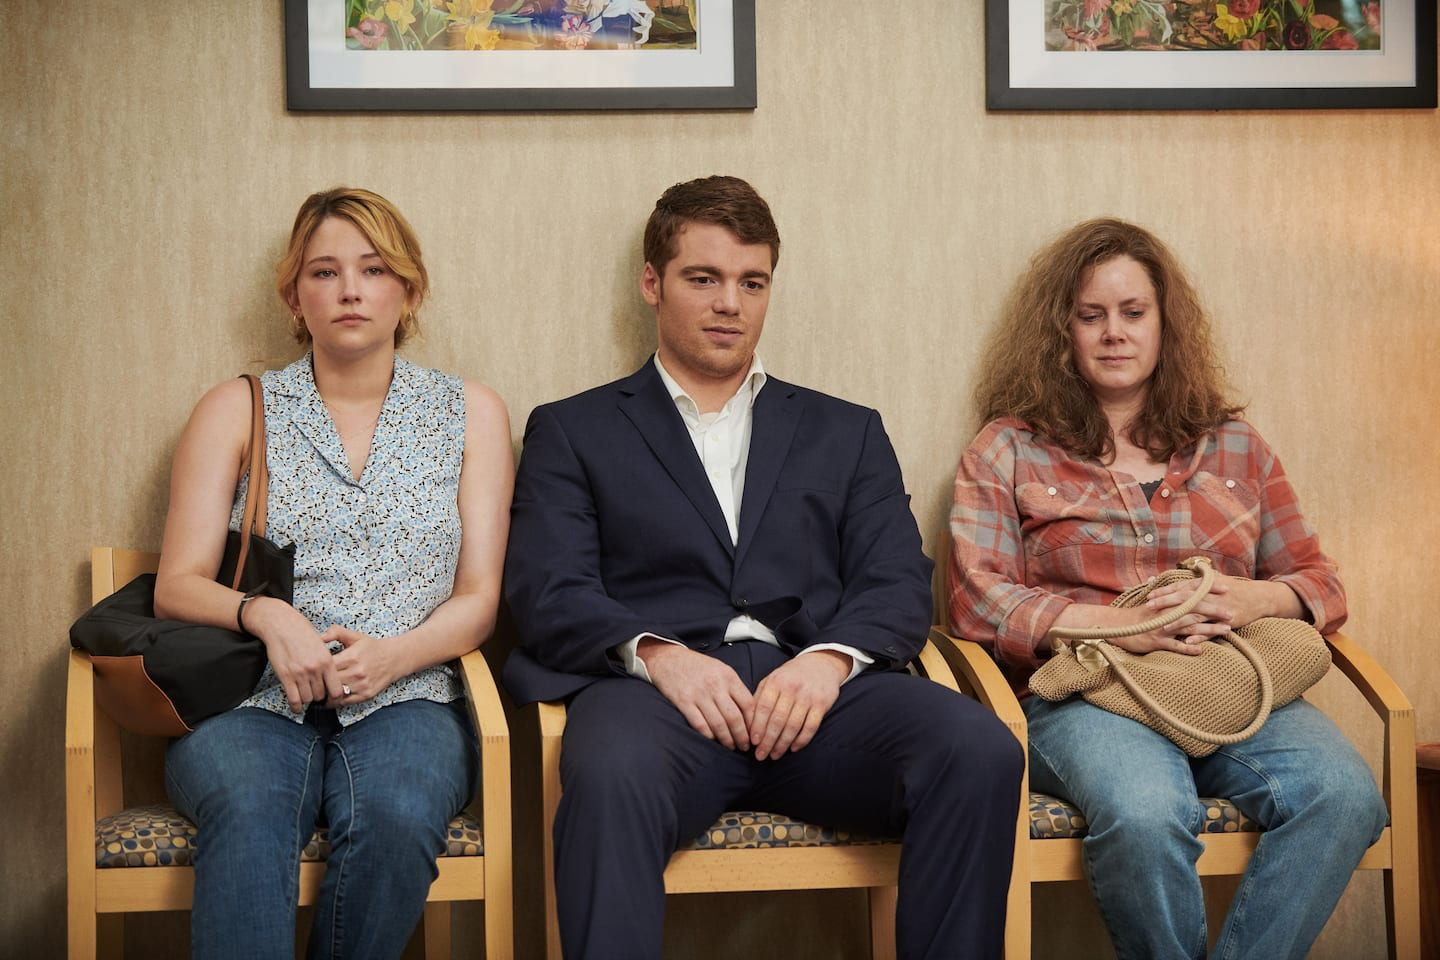 What to watch on Tuesday: 'Hillbilly Elegy' on Netflix